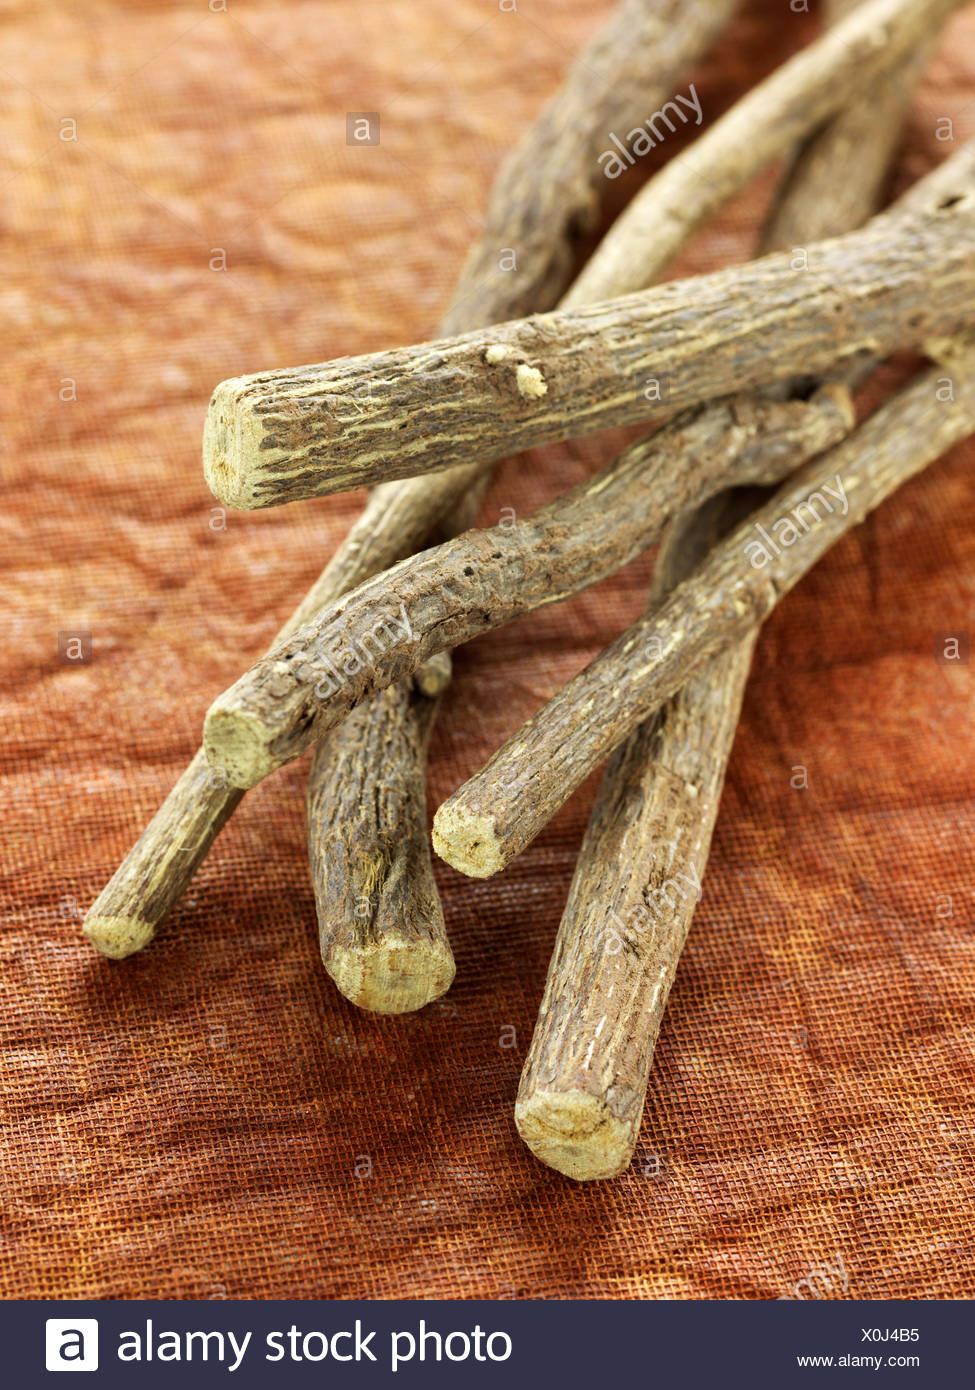 Licorice sticks - Stock Image